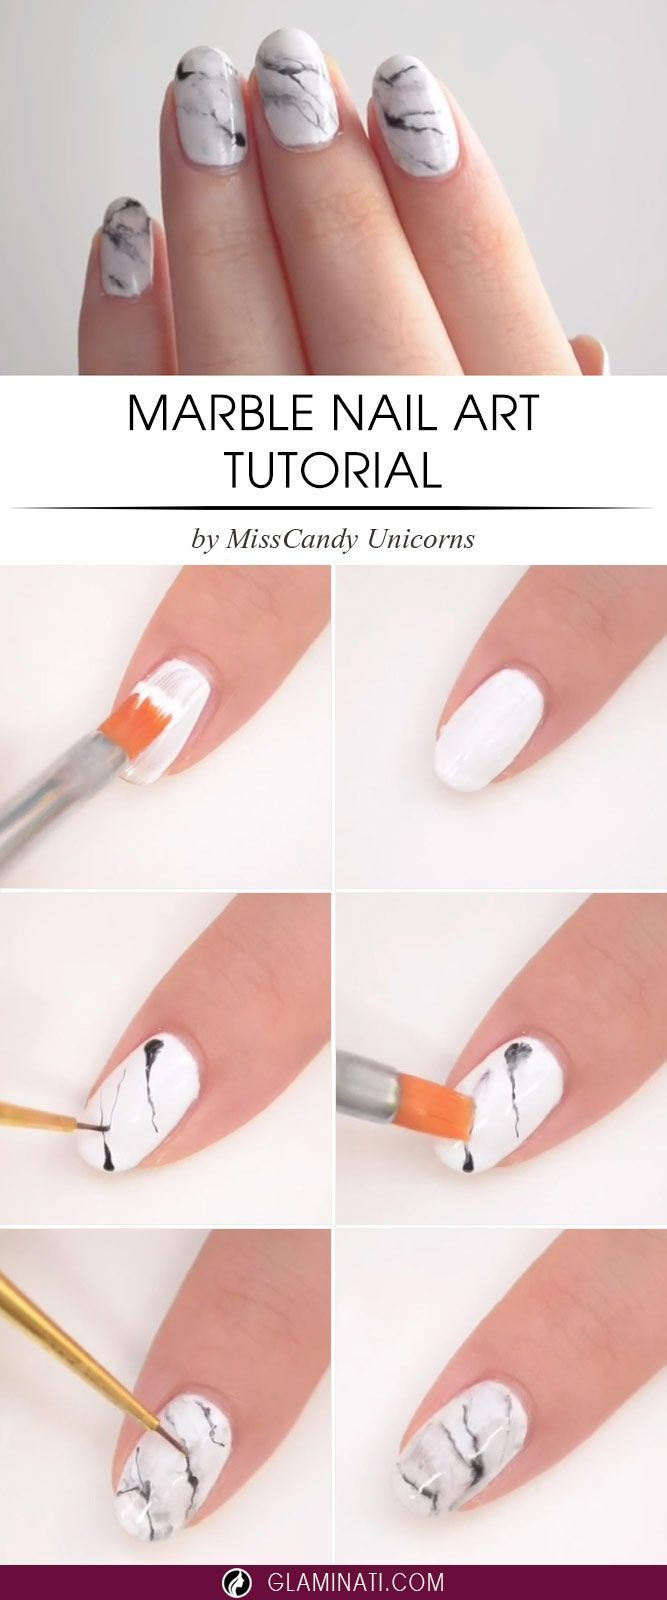 Pin by Seaymore on Nails | Pinterest | Third, Easy and Simple nail ...